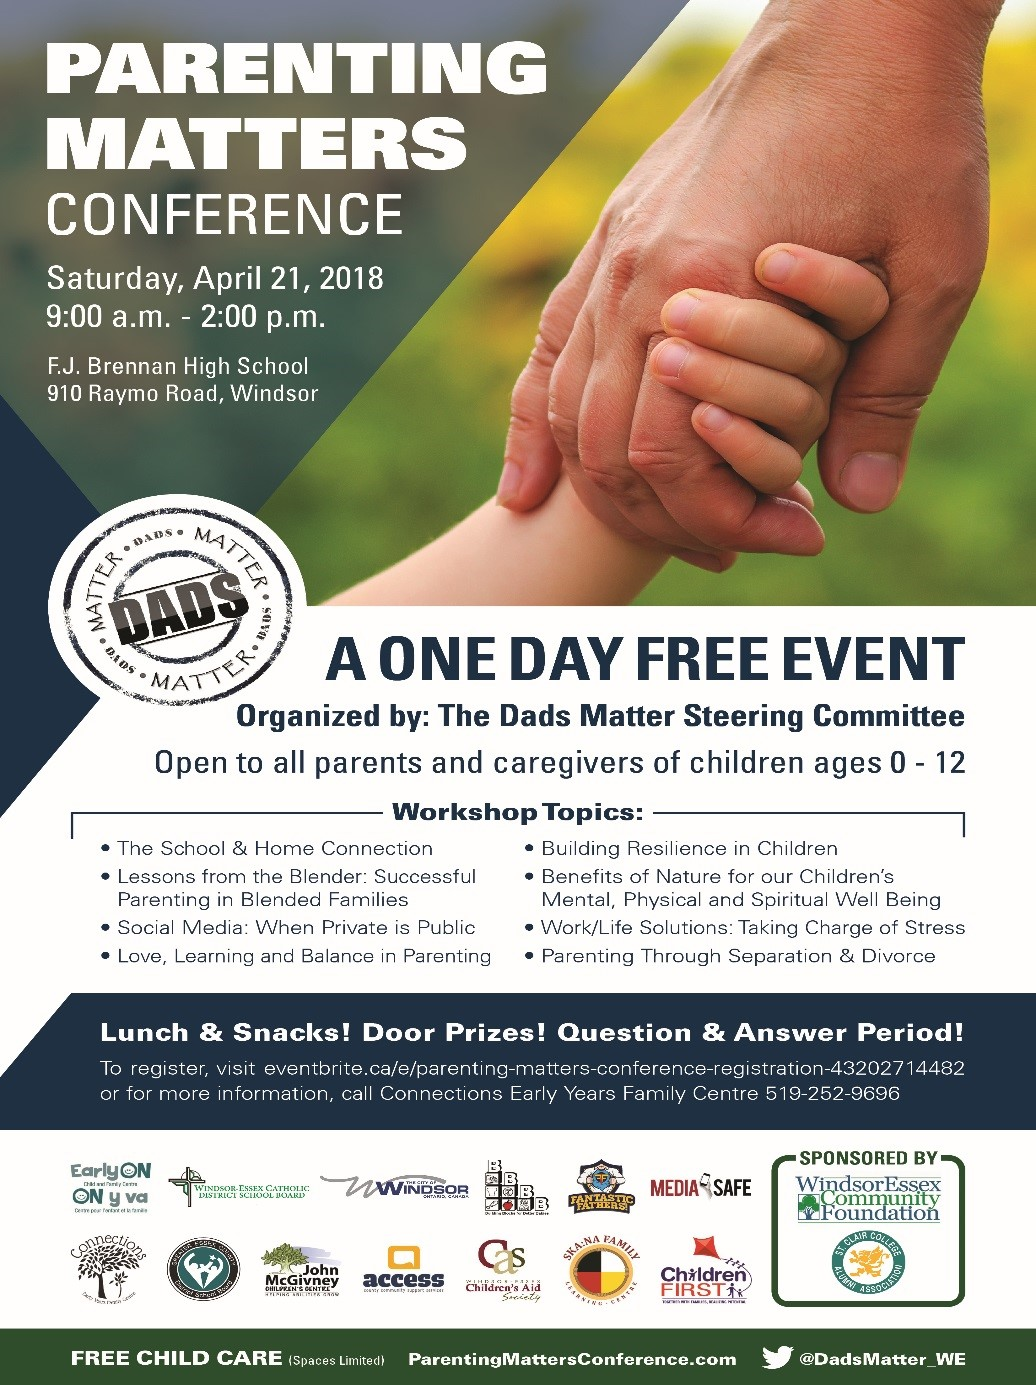 Poster for the Parenting Matters Conference in Windsor, Ontario.